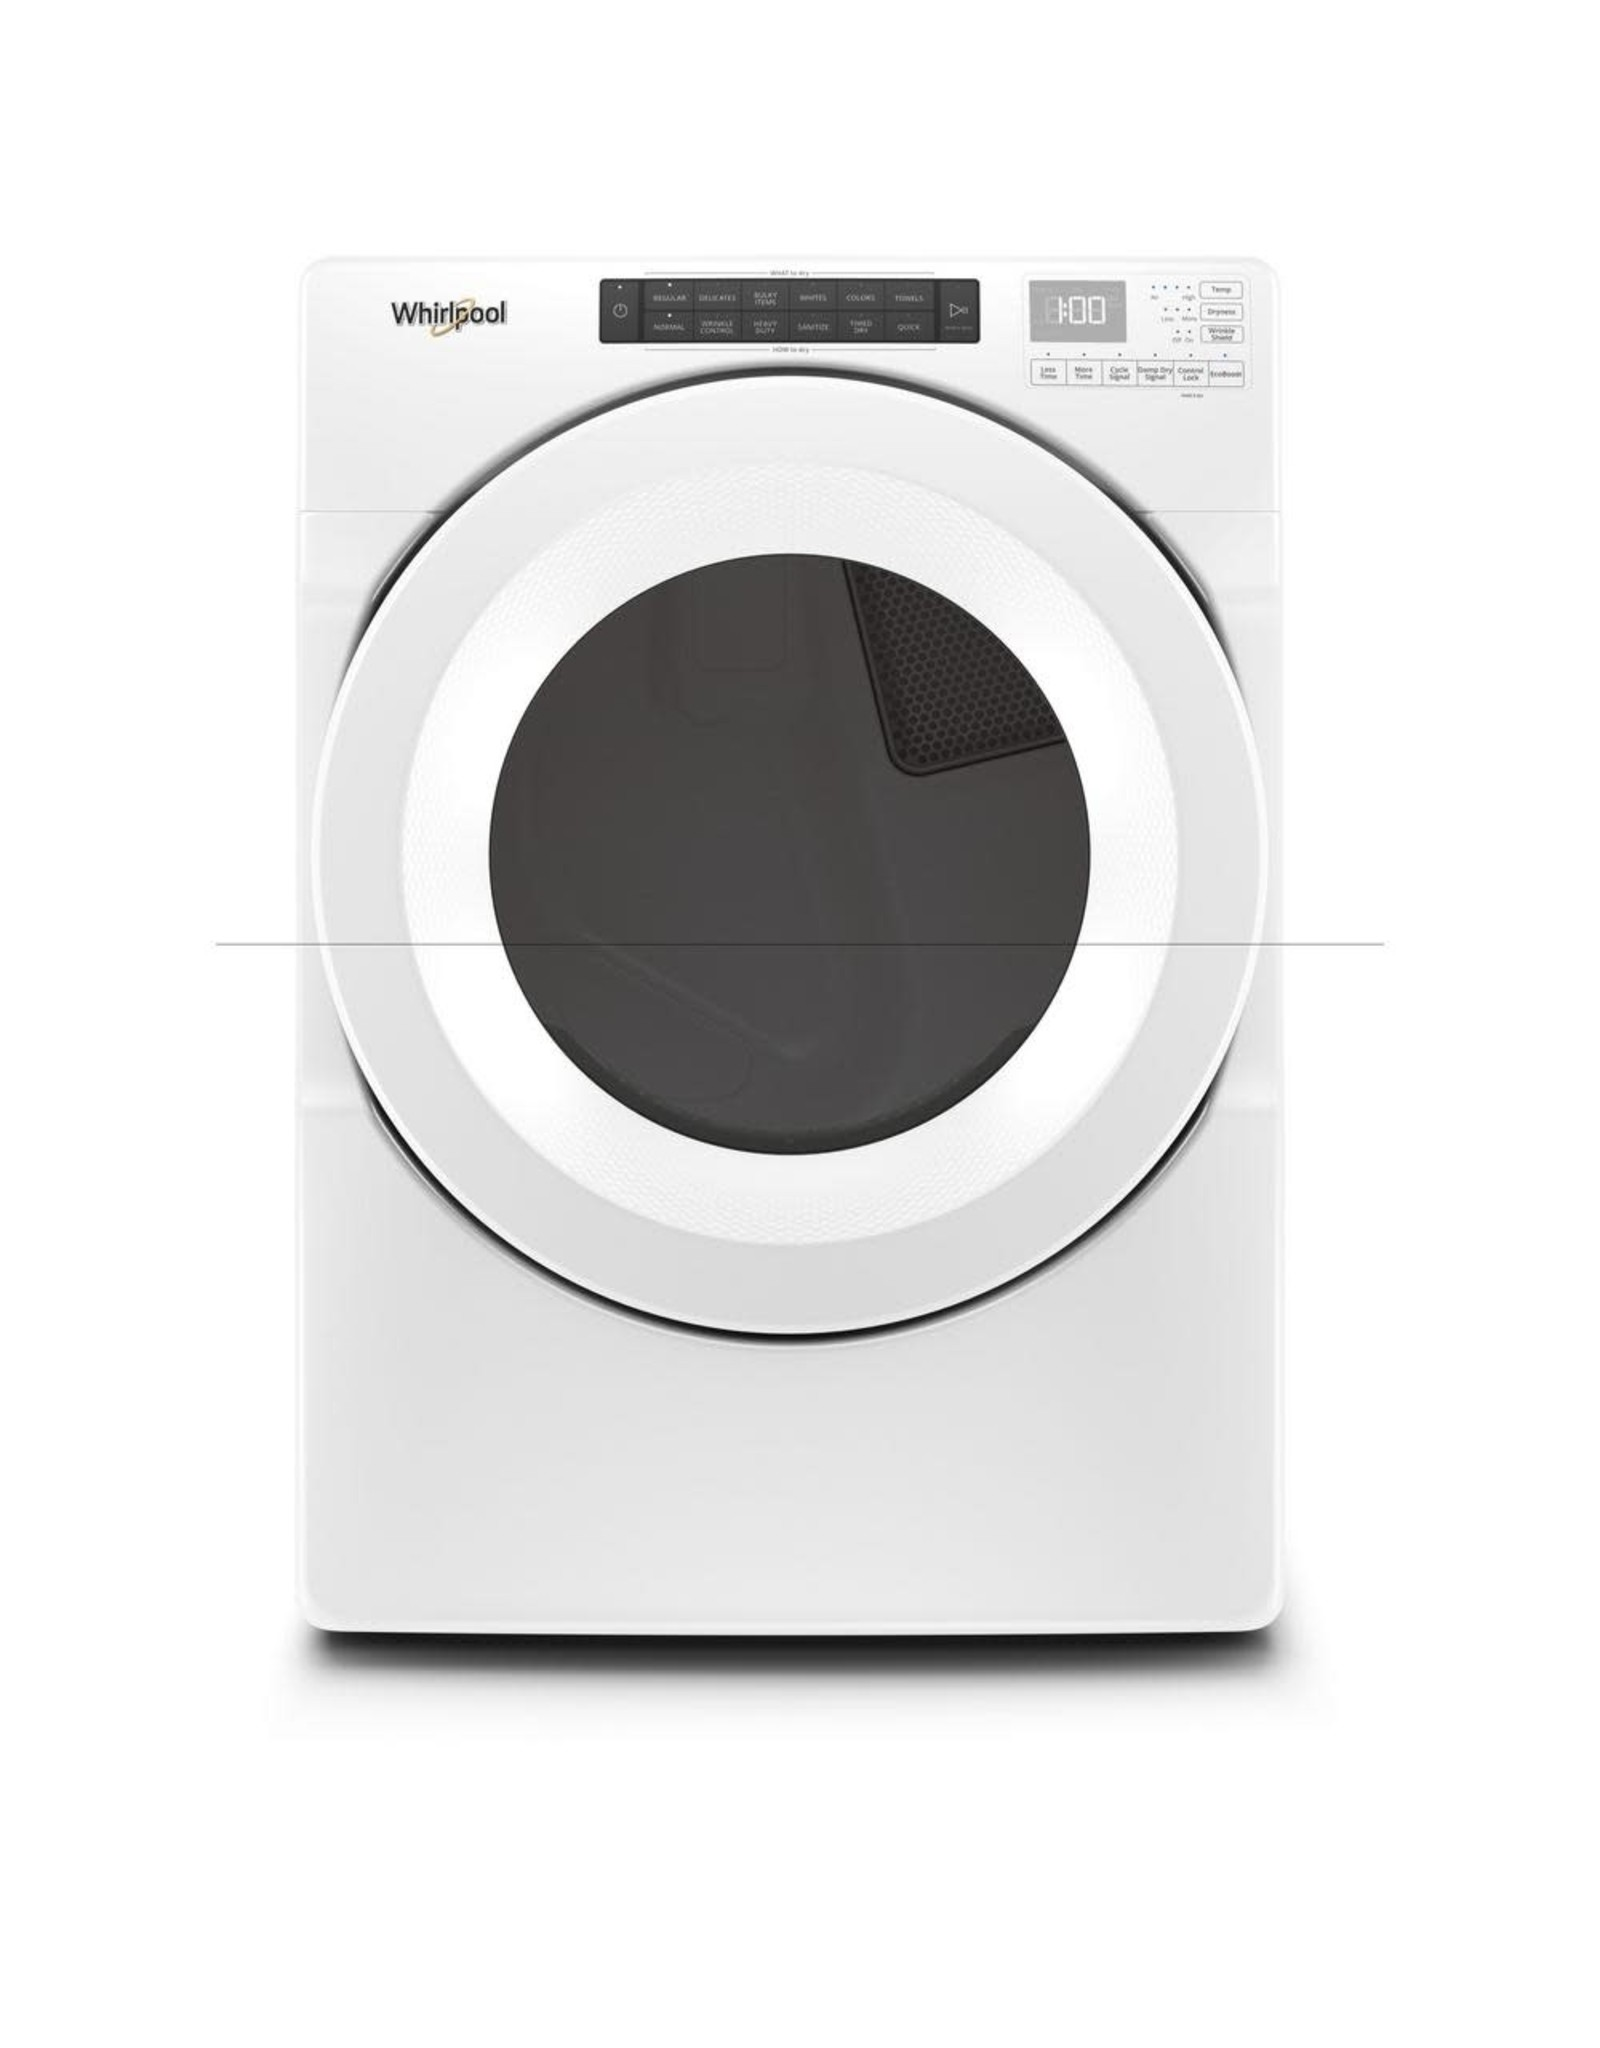 WHIRLPOOL WED5620HW 240-Volt White Electric Dryer with Intuitive Touch Controls and Advanced Moisture Sensing, ENERGY STAR